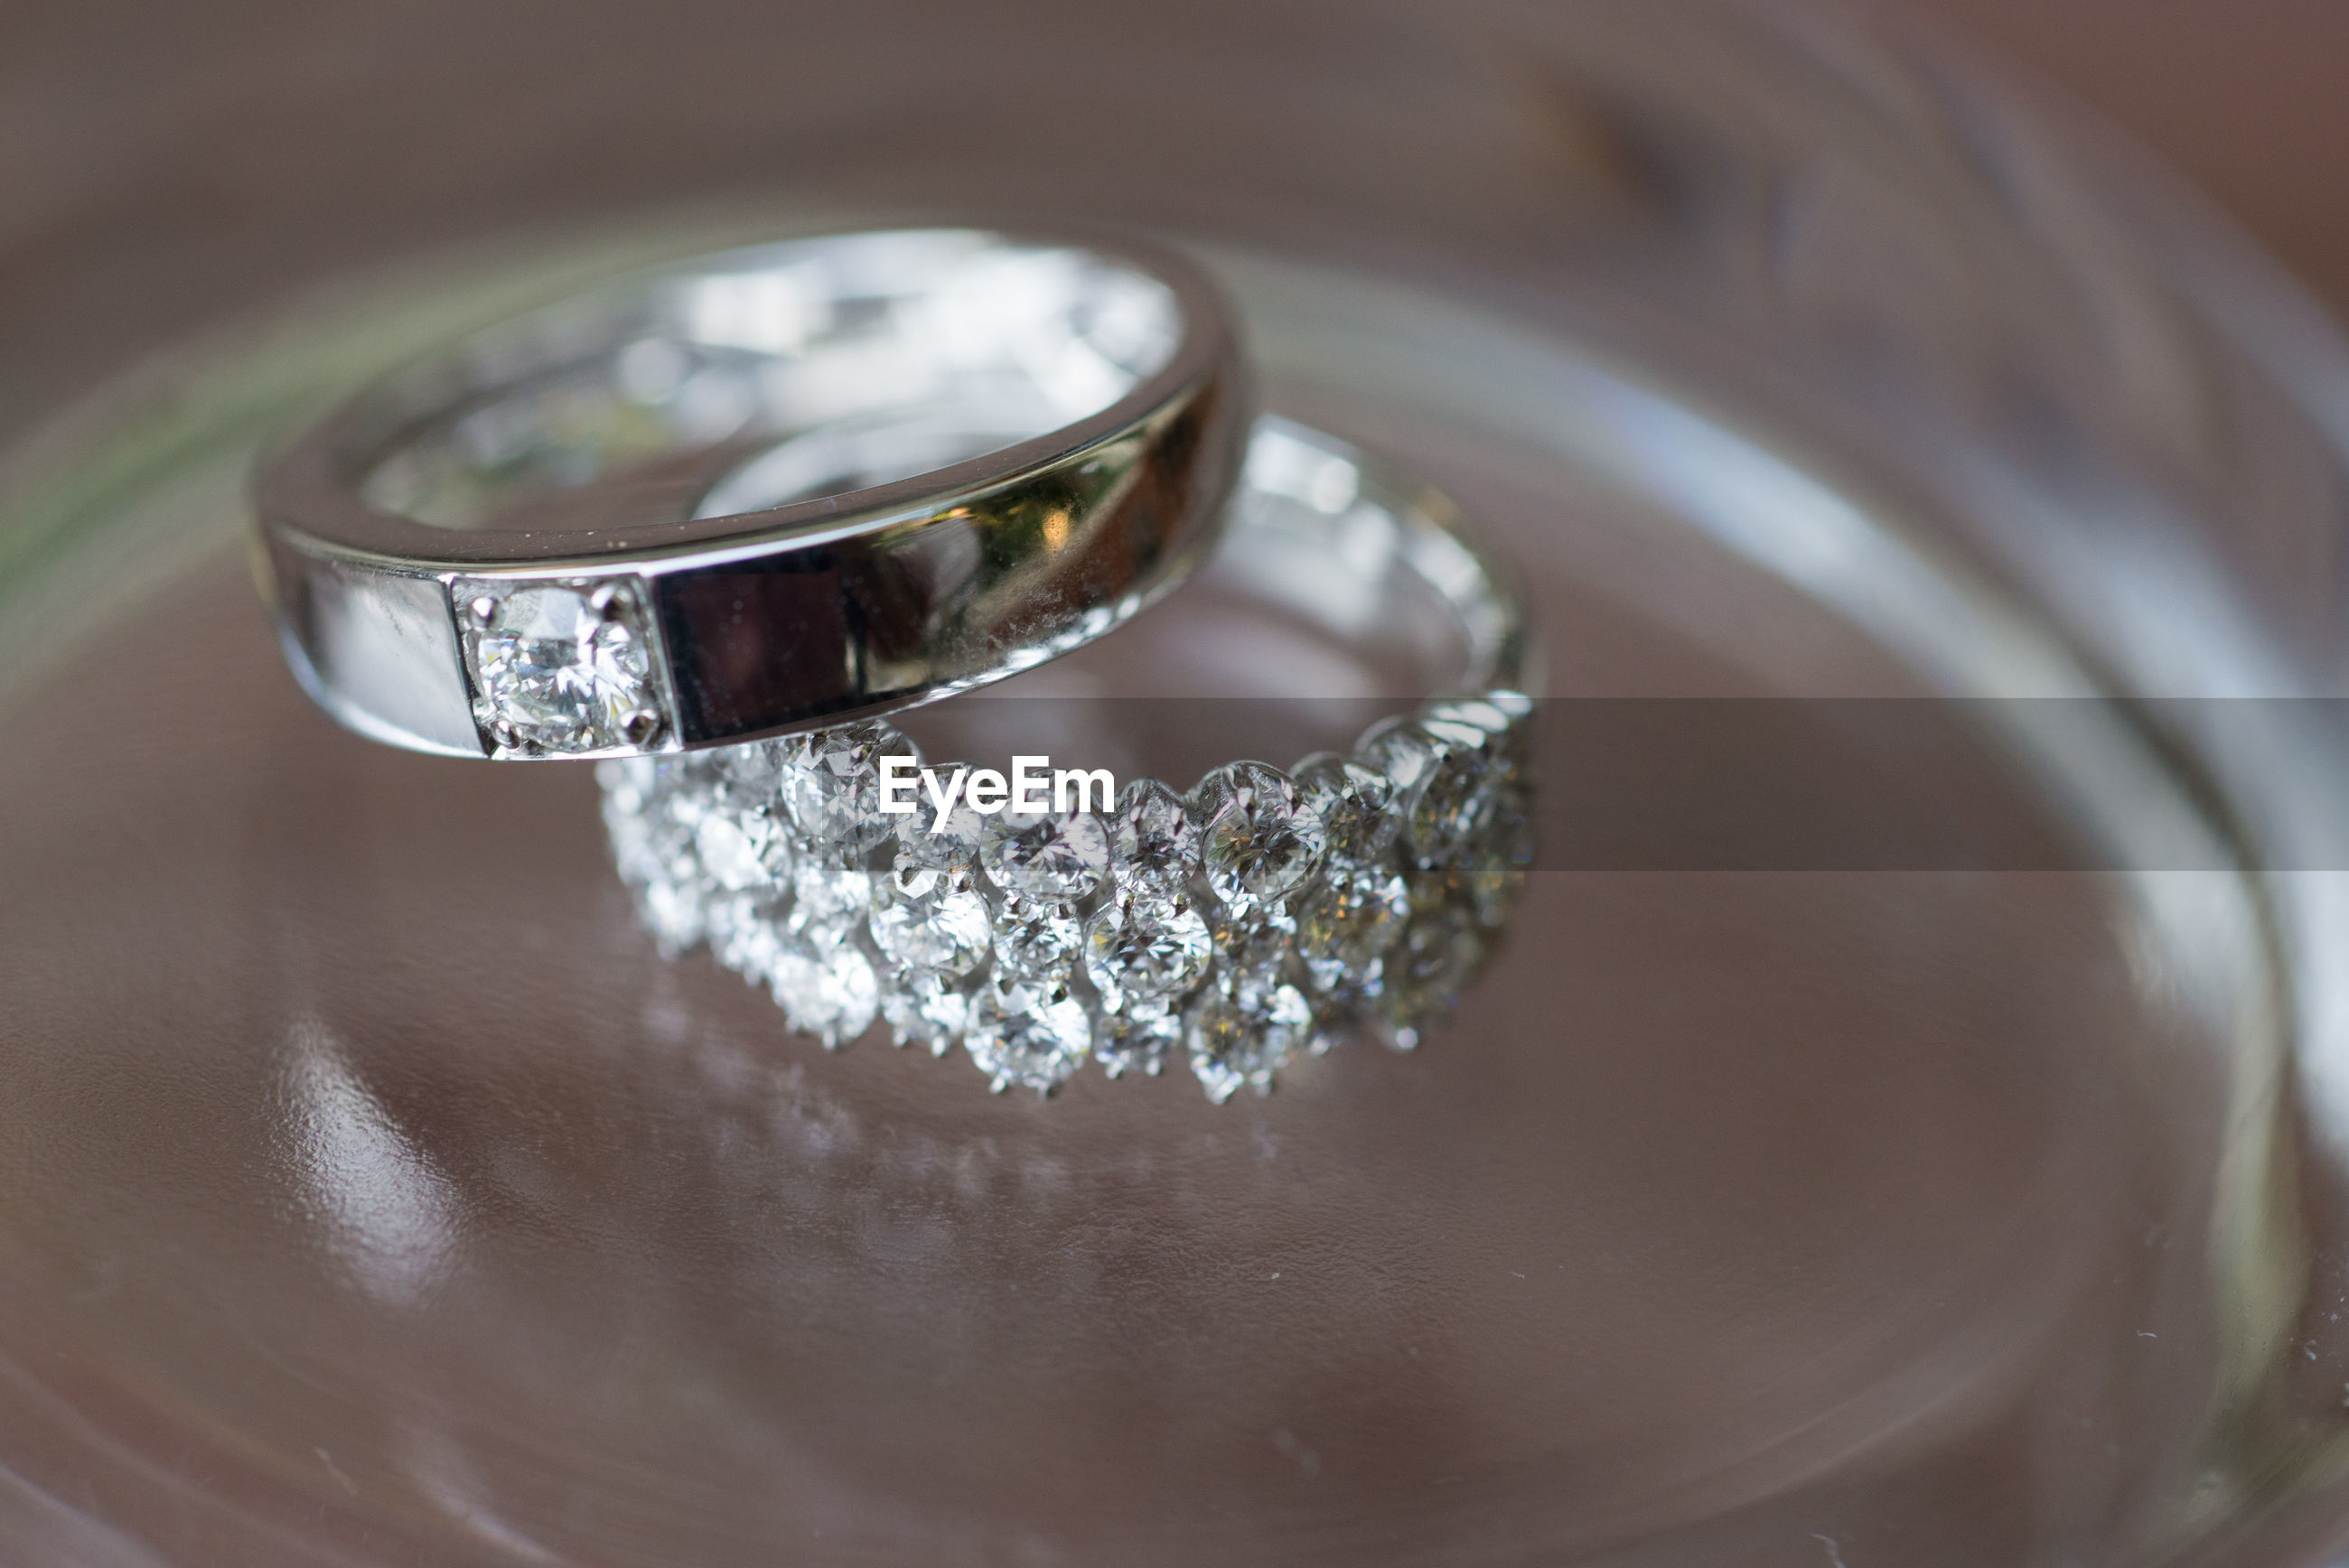 Close-up of wedding rings on glass table